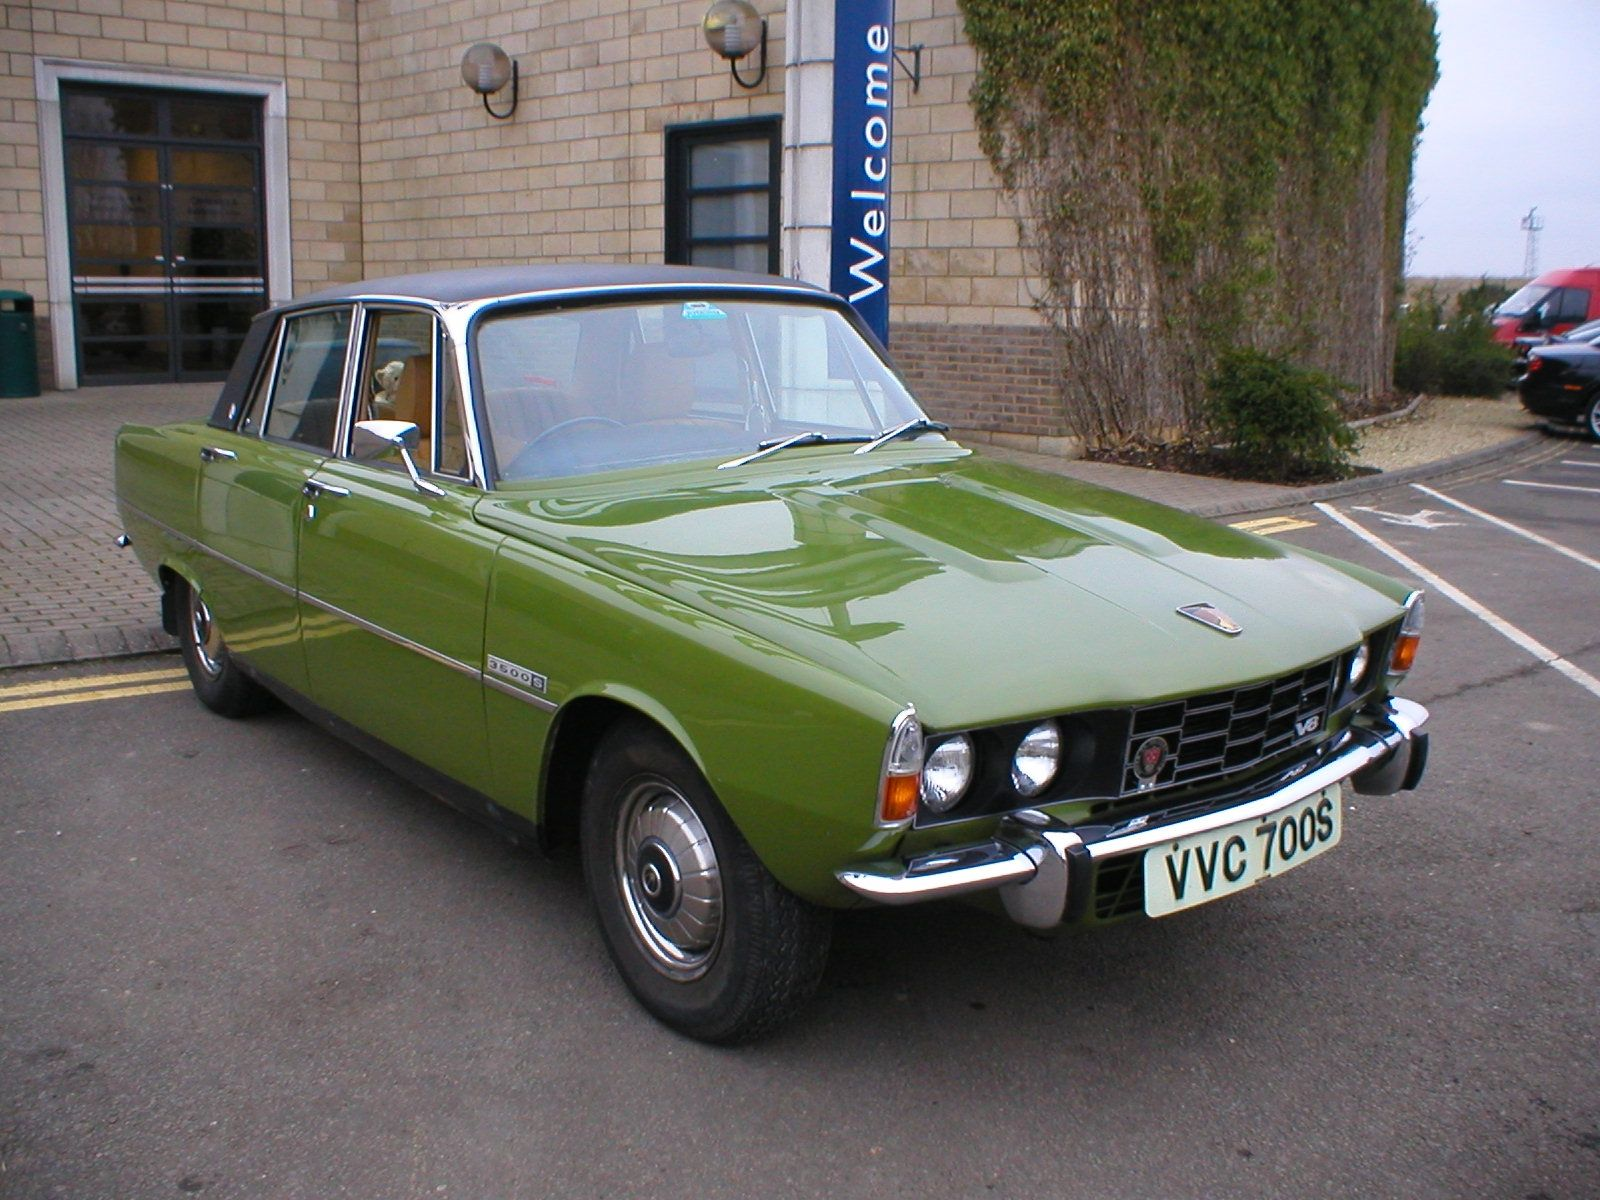 Rover P6 3500S the one is the last P6 off the production line